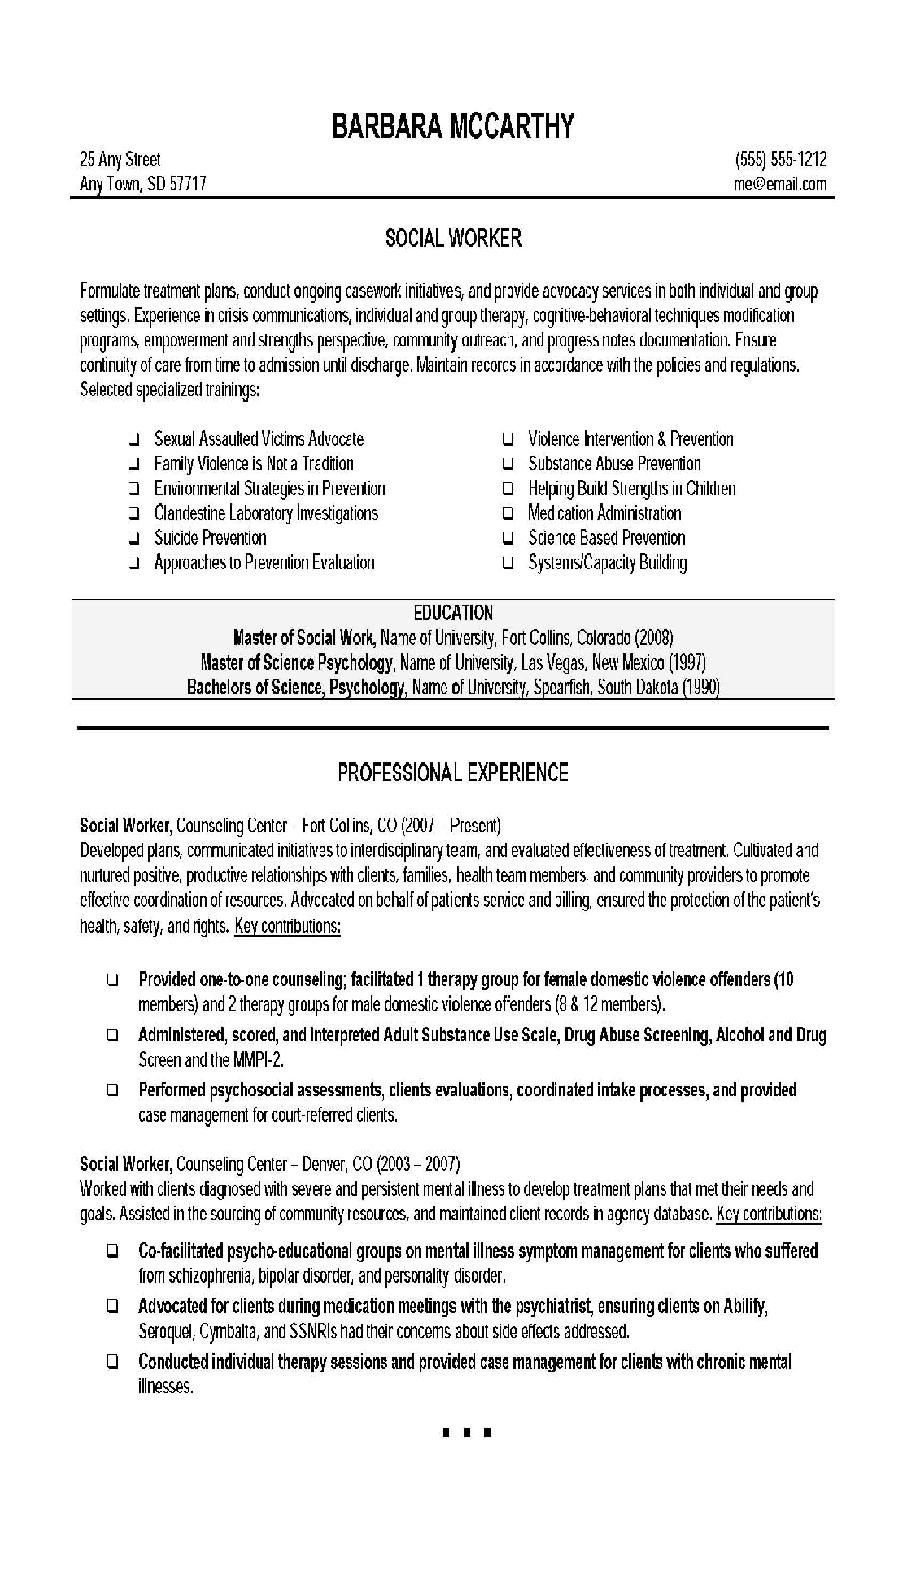 social worker resume 4 social work social work resume sample